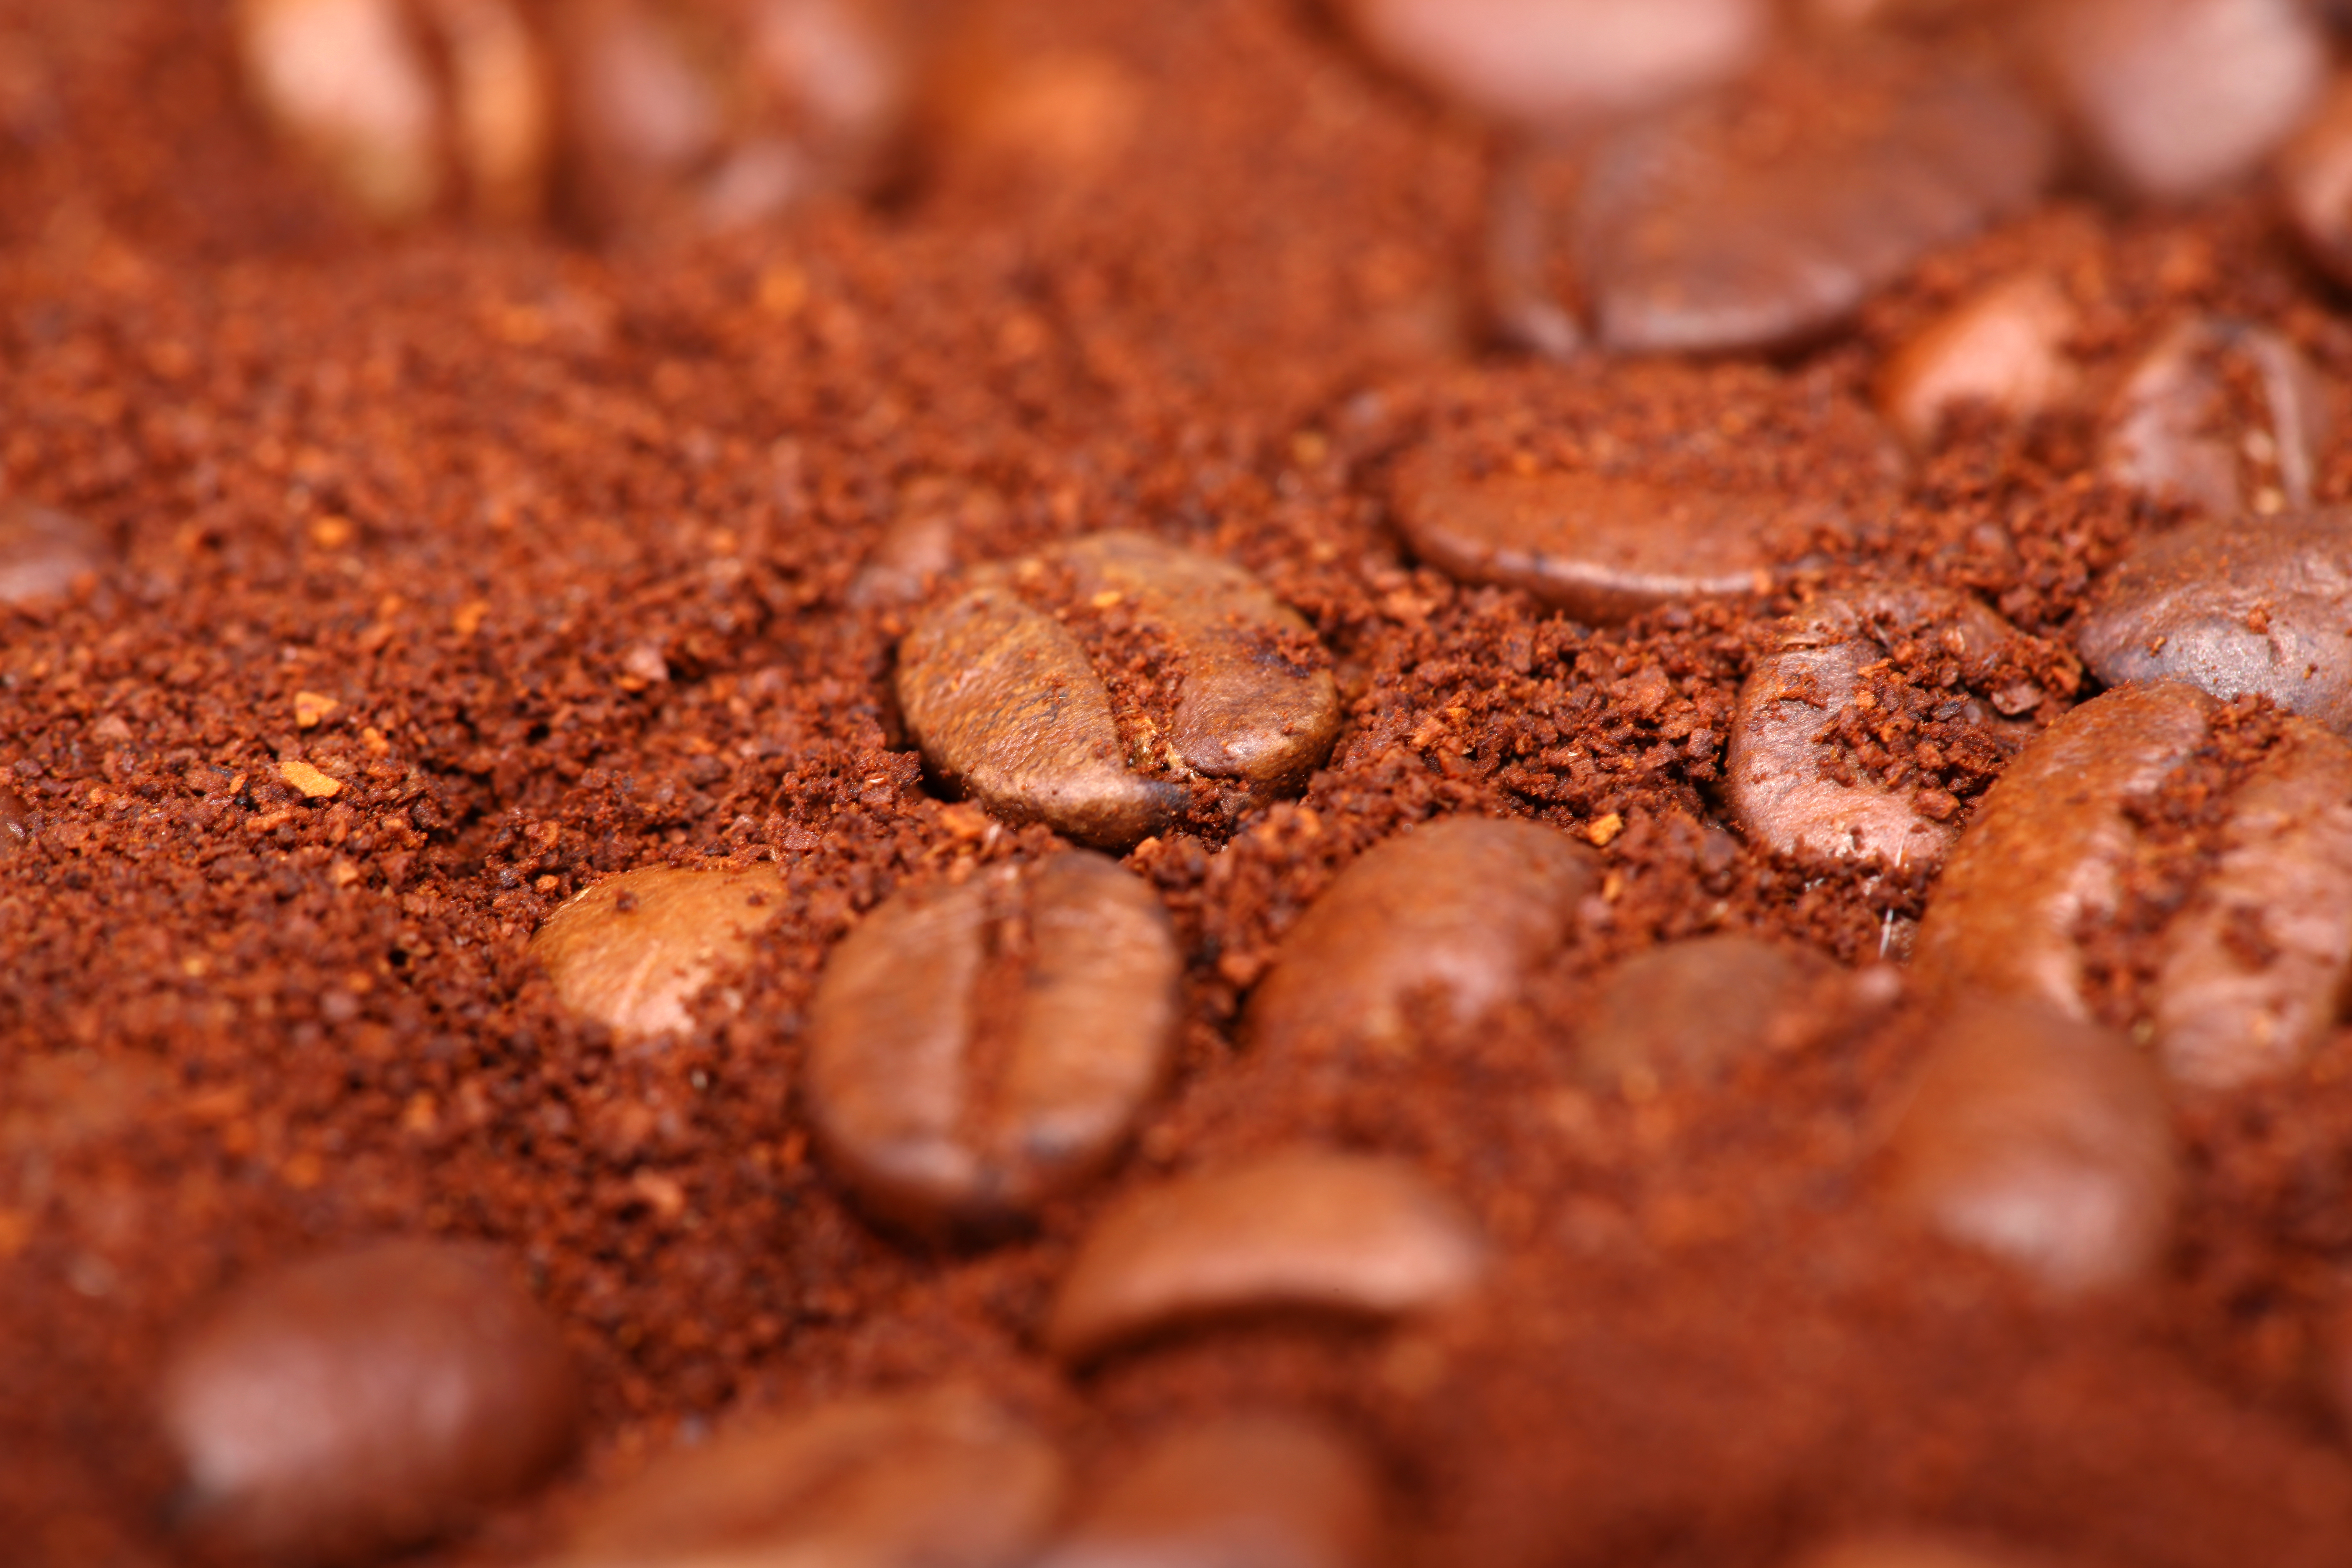 coffee beans, Mocha, Nobody, Non-alcoholic, Macro, HQ Photo